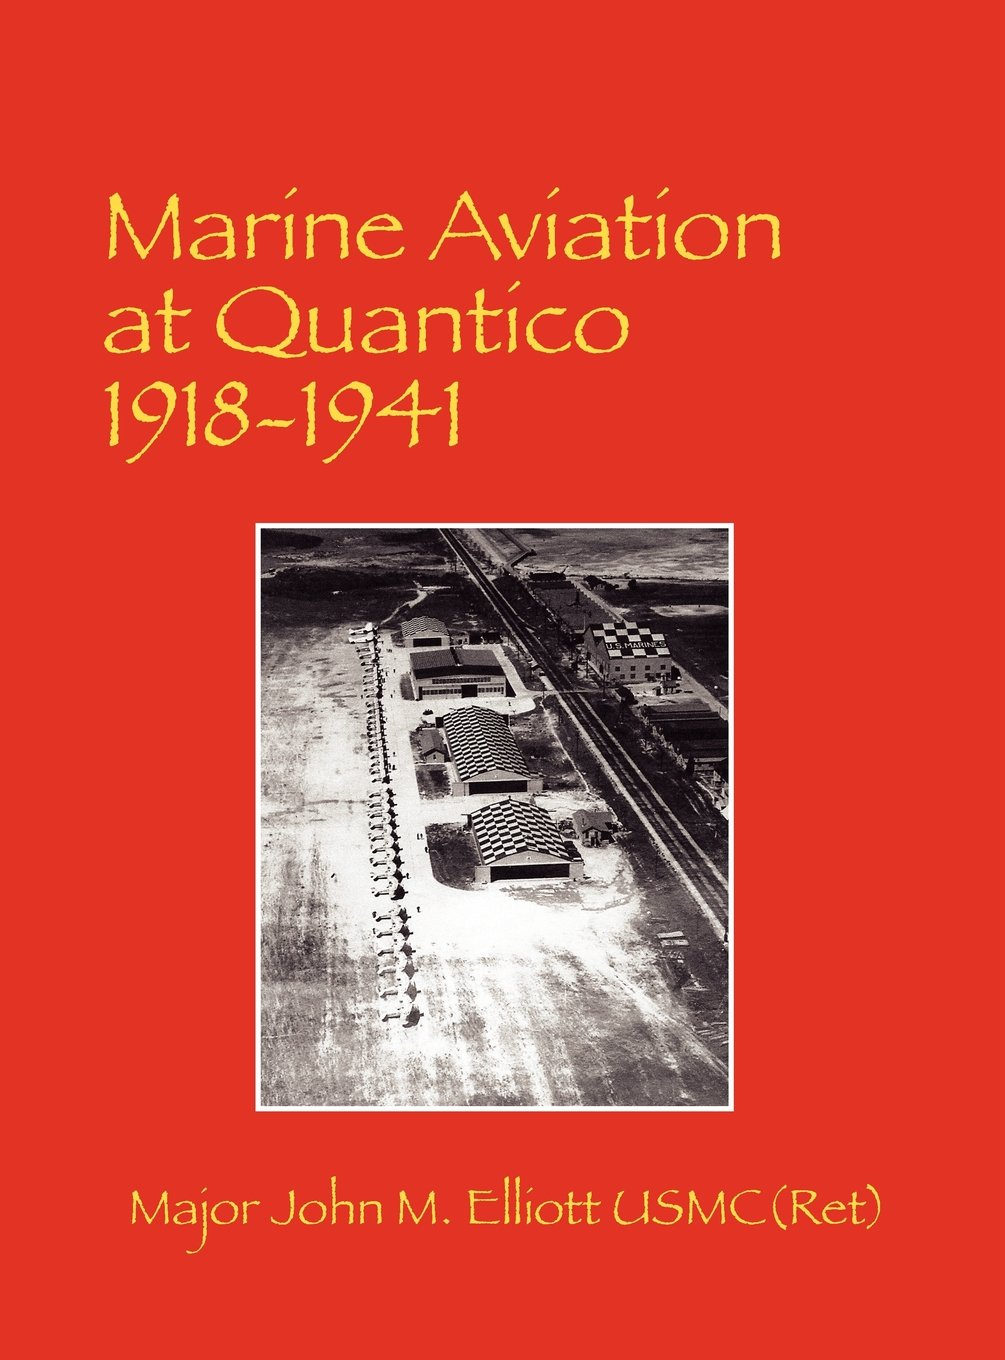 Download Marine Aviation at Quantico 1918-1941 PDF